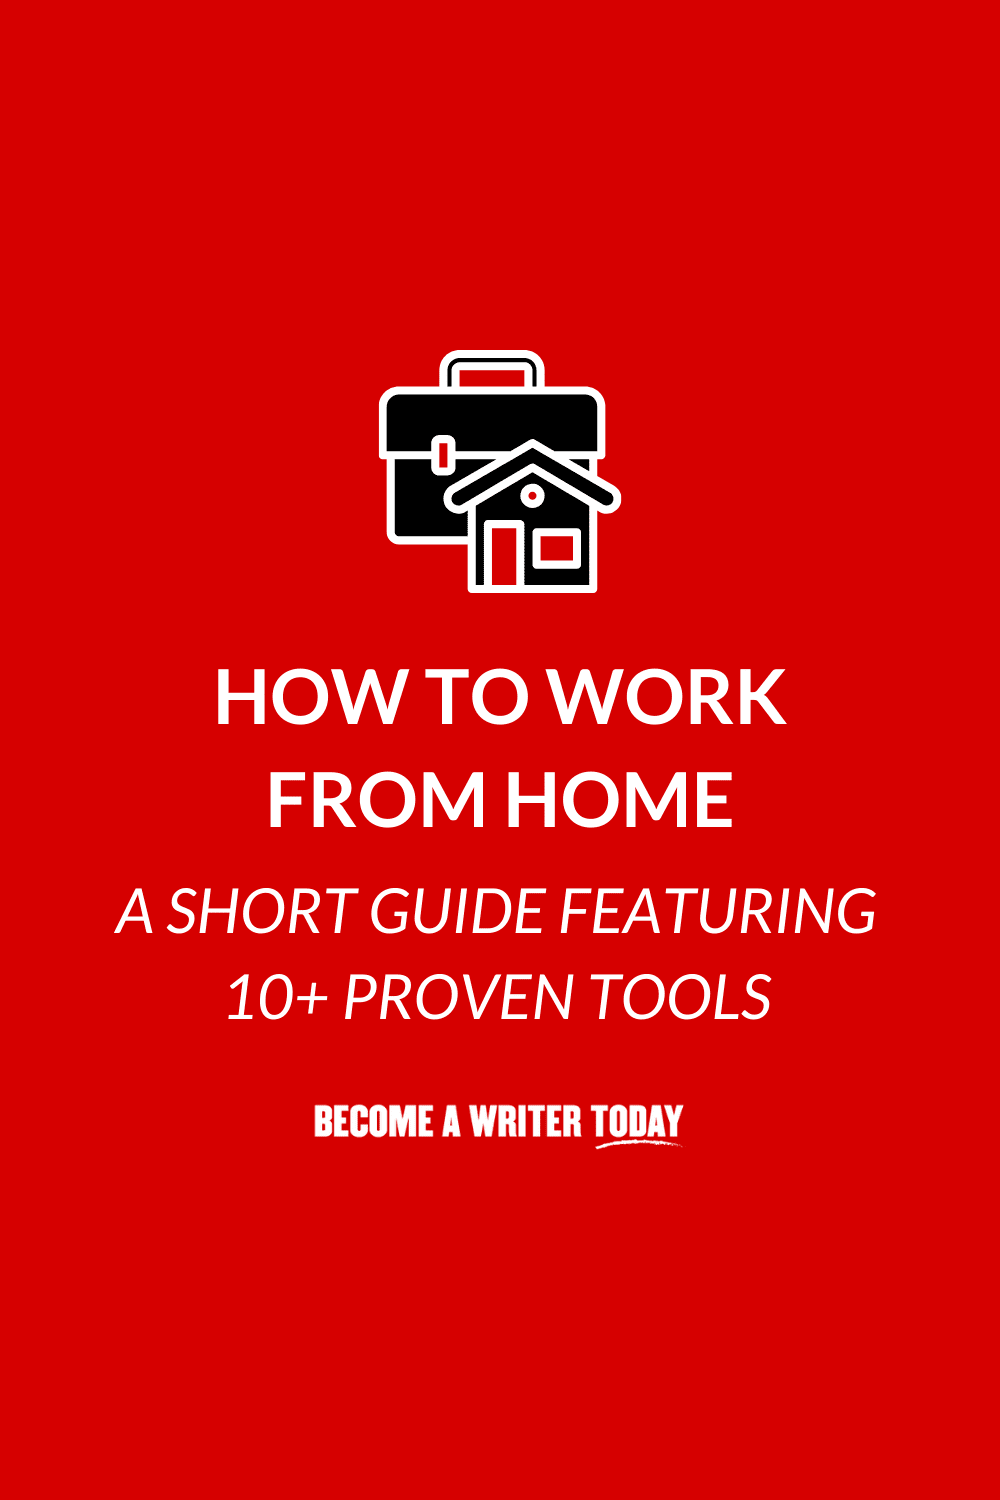 How to Work from Home: A Short Guide Featuring 10+ Proven Tools